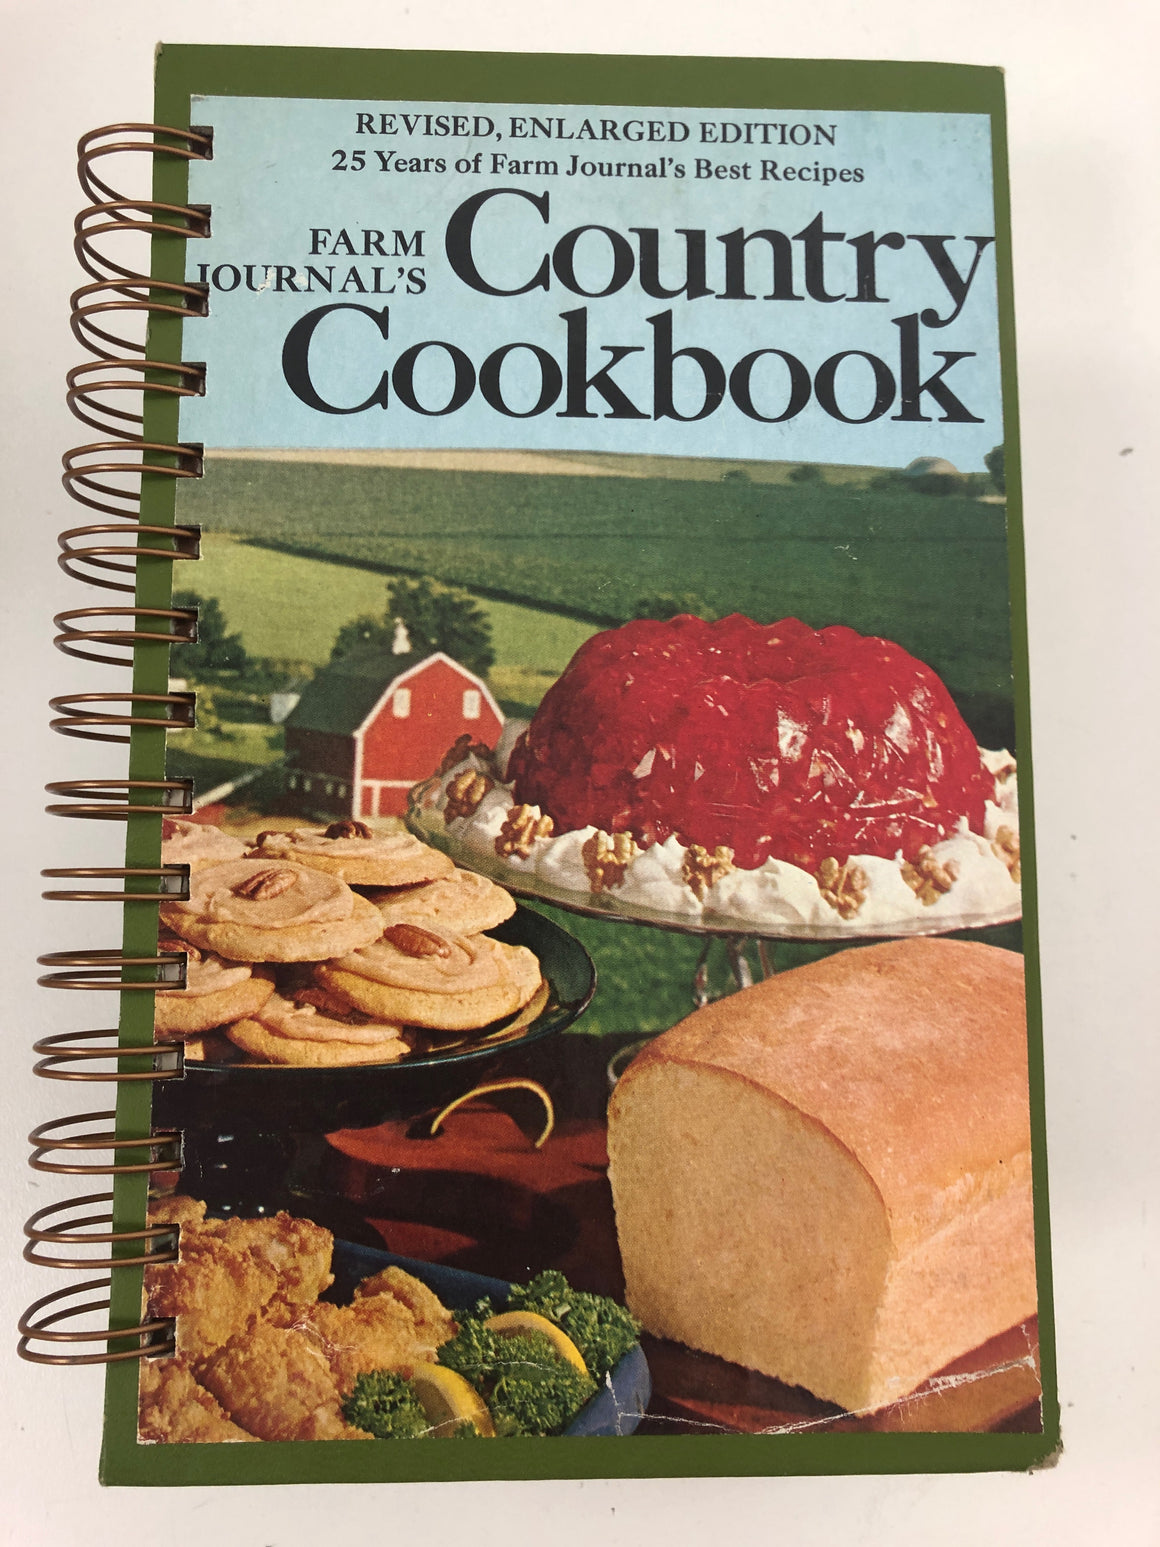 Farm Journals: Country Cookbook-Red Barn Collections